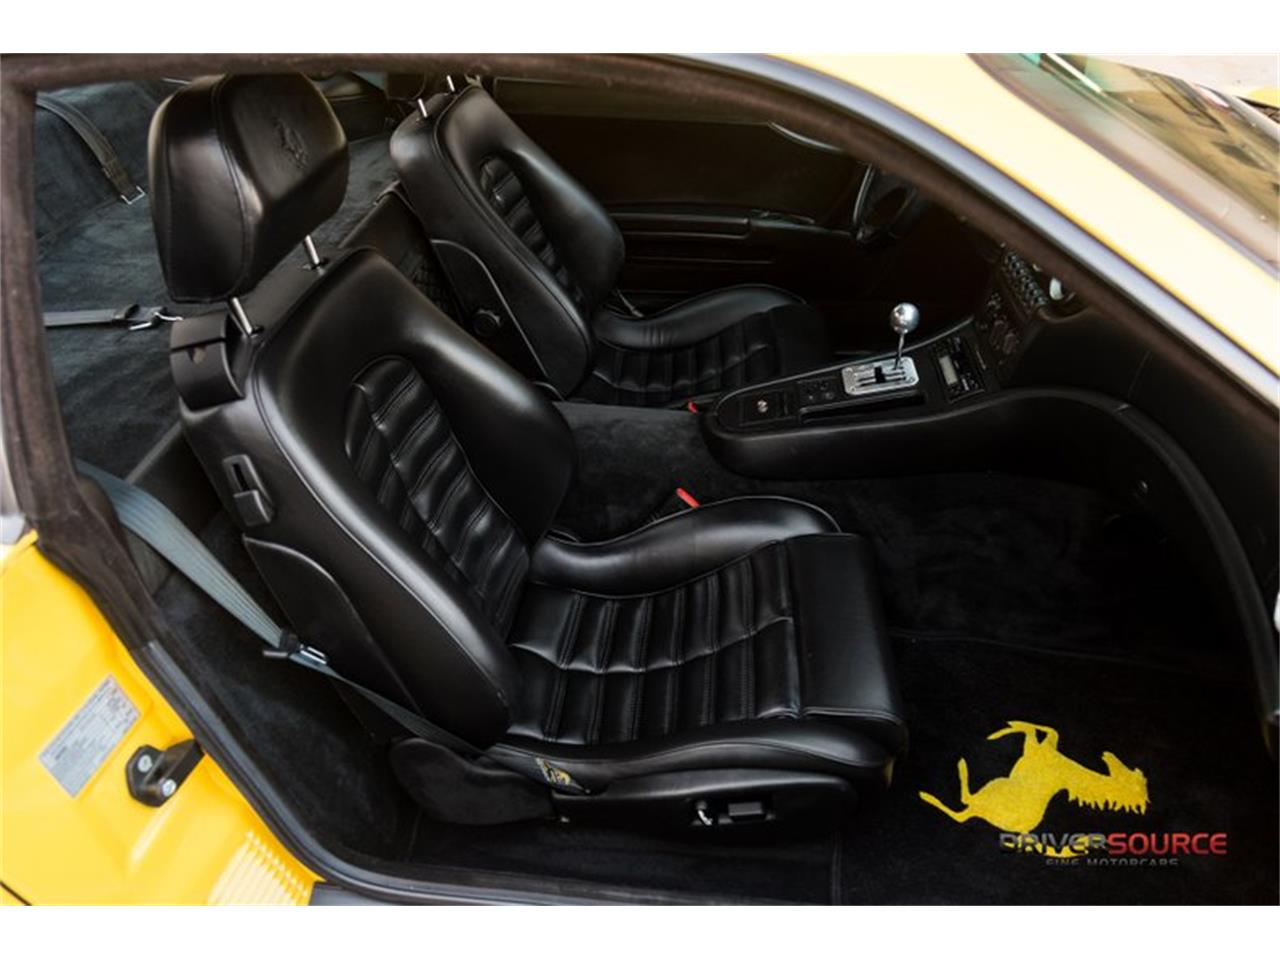 1997 Ferrari 550 Maranello for sale in Houston, TX – photo 21